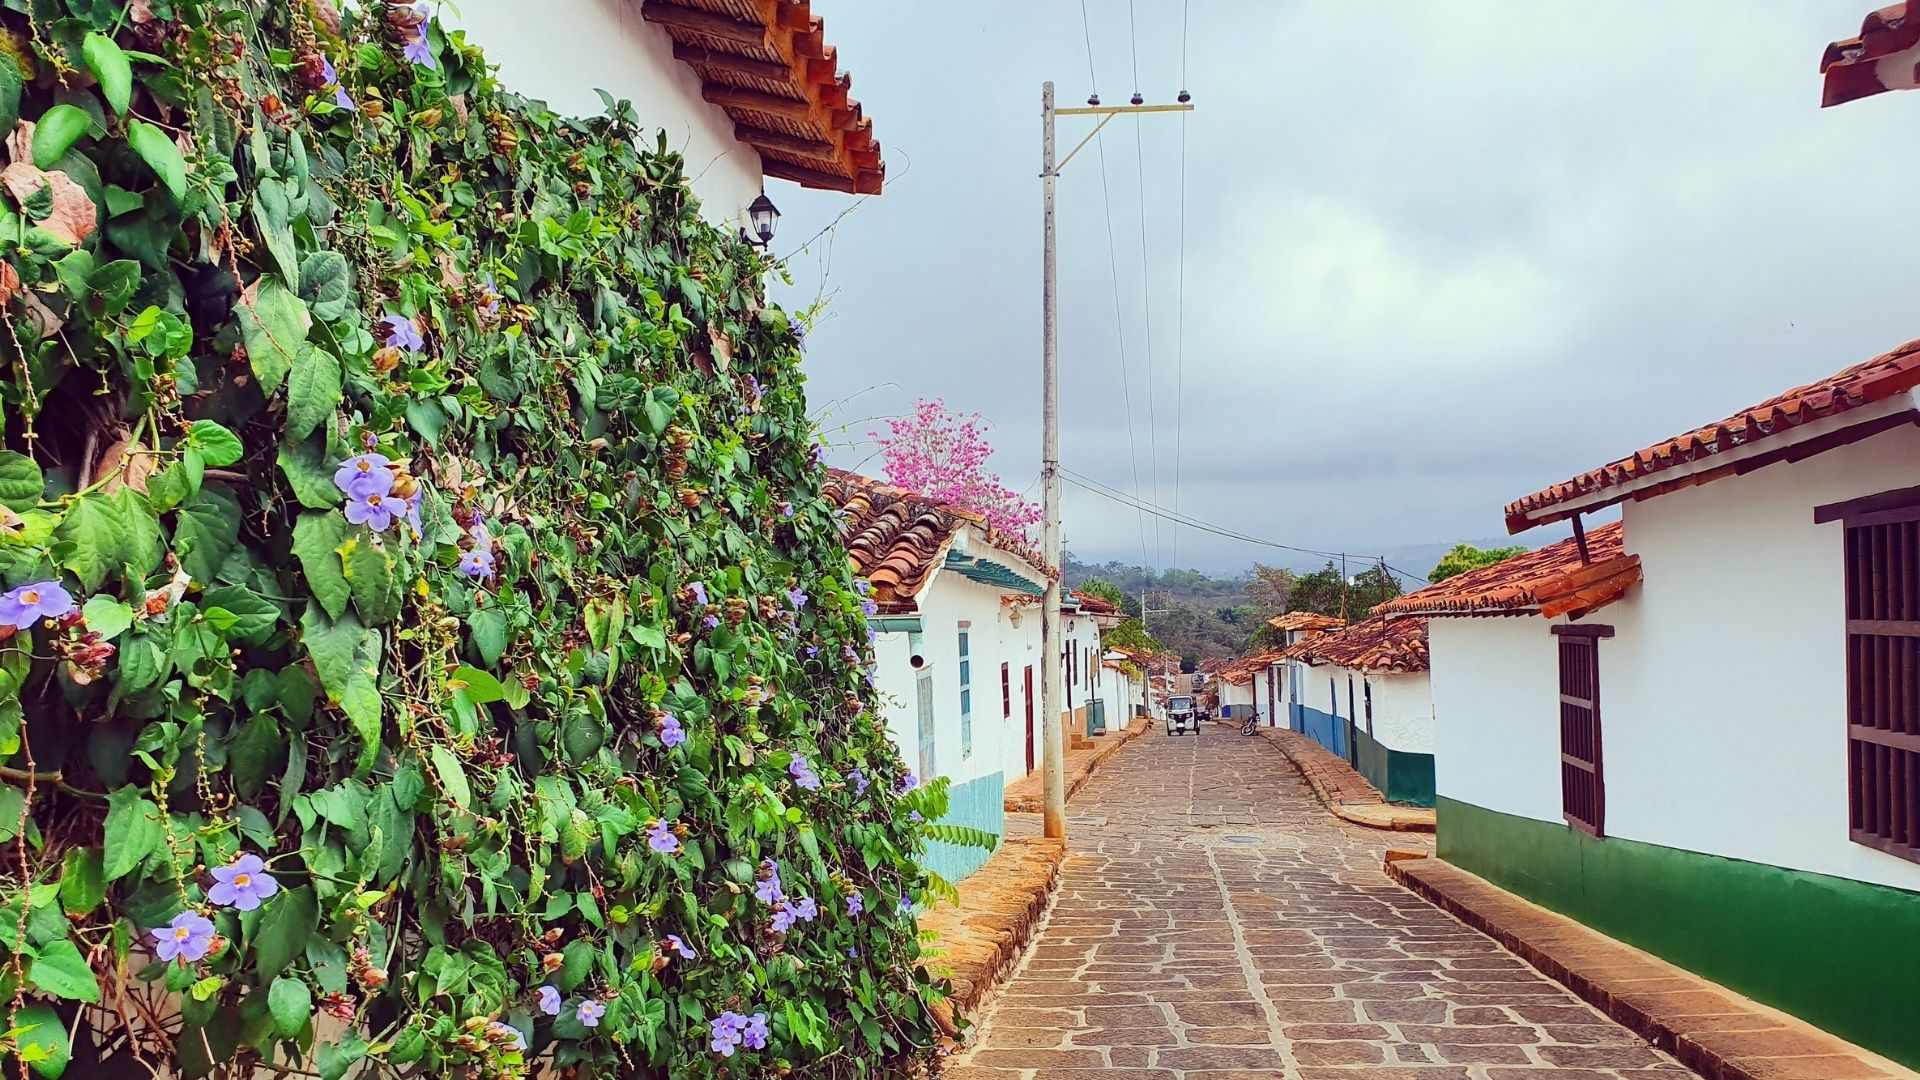 Barichara vacation spots in South America